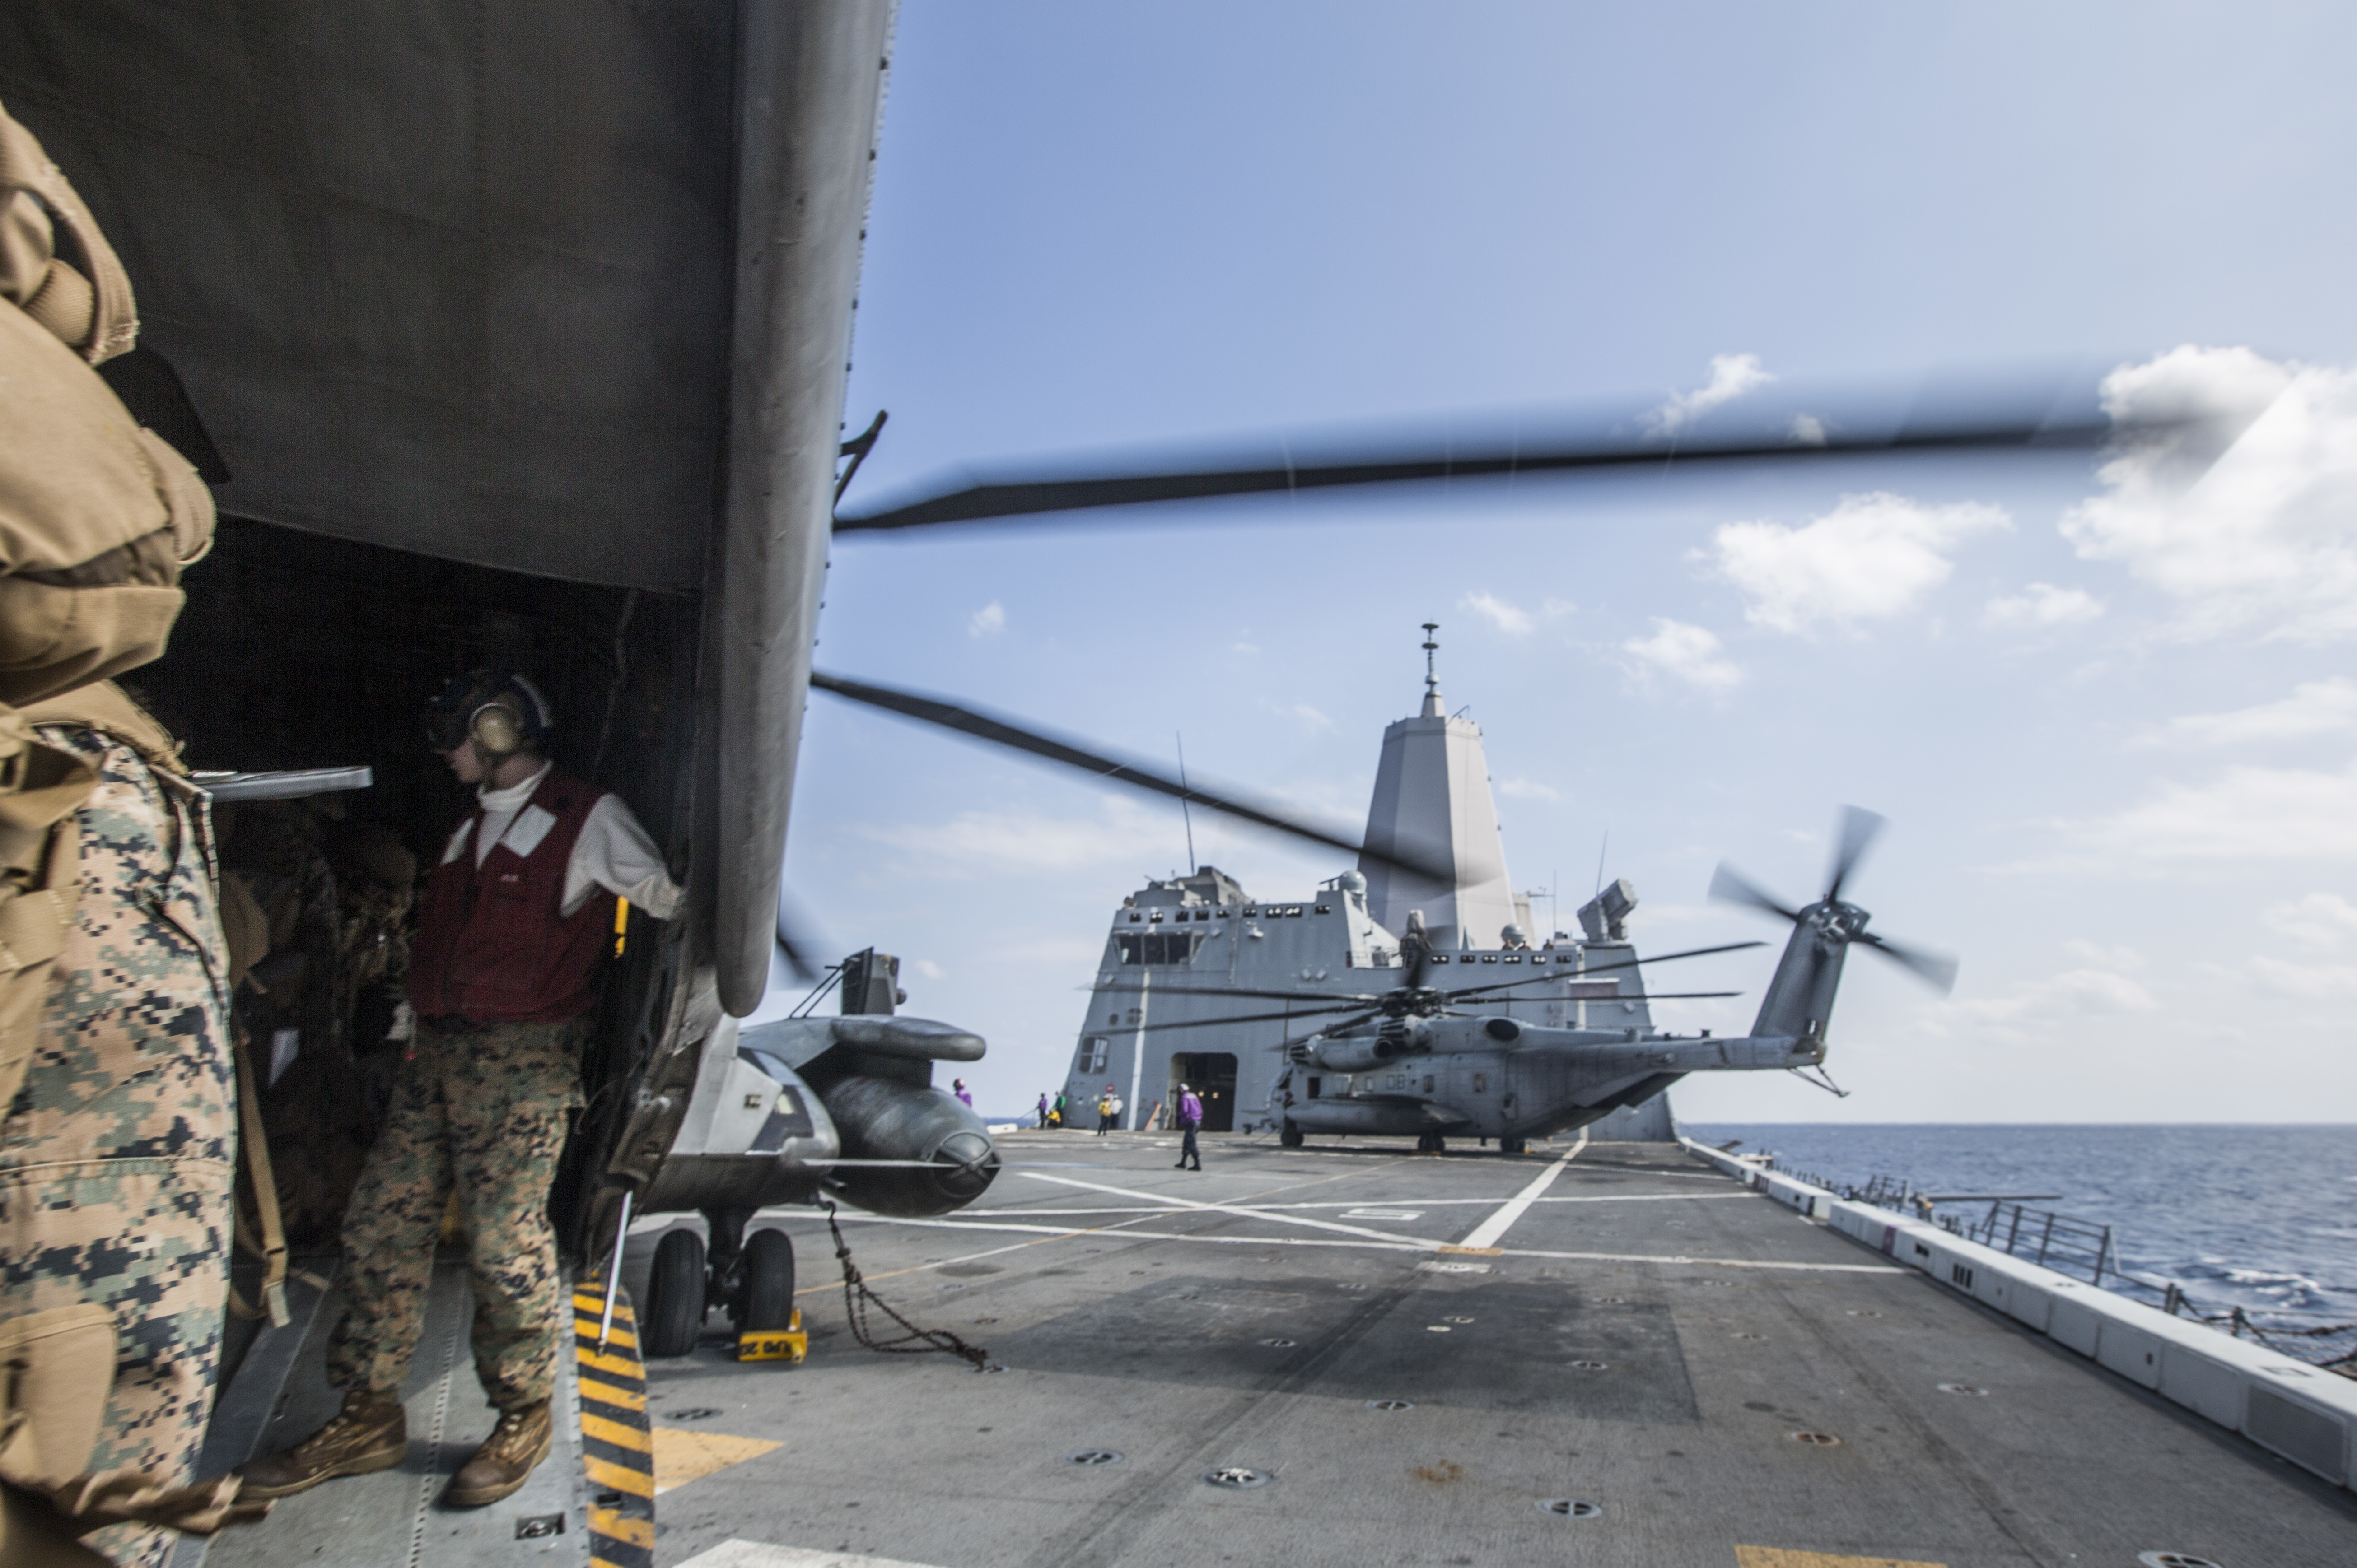 U.S. Marines load onto a CH-53E Super Stallion helicopter from Marine Heavy Helicopter Squadron 361, forward deployed to Marine Aircraft Group 36, 1st Marine Aircraft Wing, from the flight deck of the amphibious transport dock ship USS Green Bay (LPD 20), during Blue Chromite 2017 in Okinawa, Japan, November 3, 2016. US Marine Corps photo.